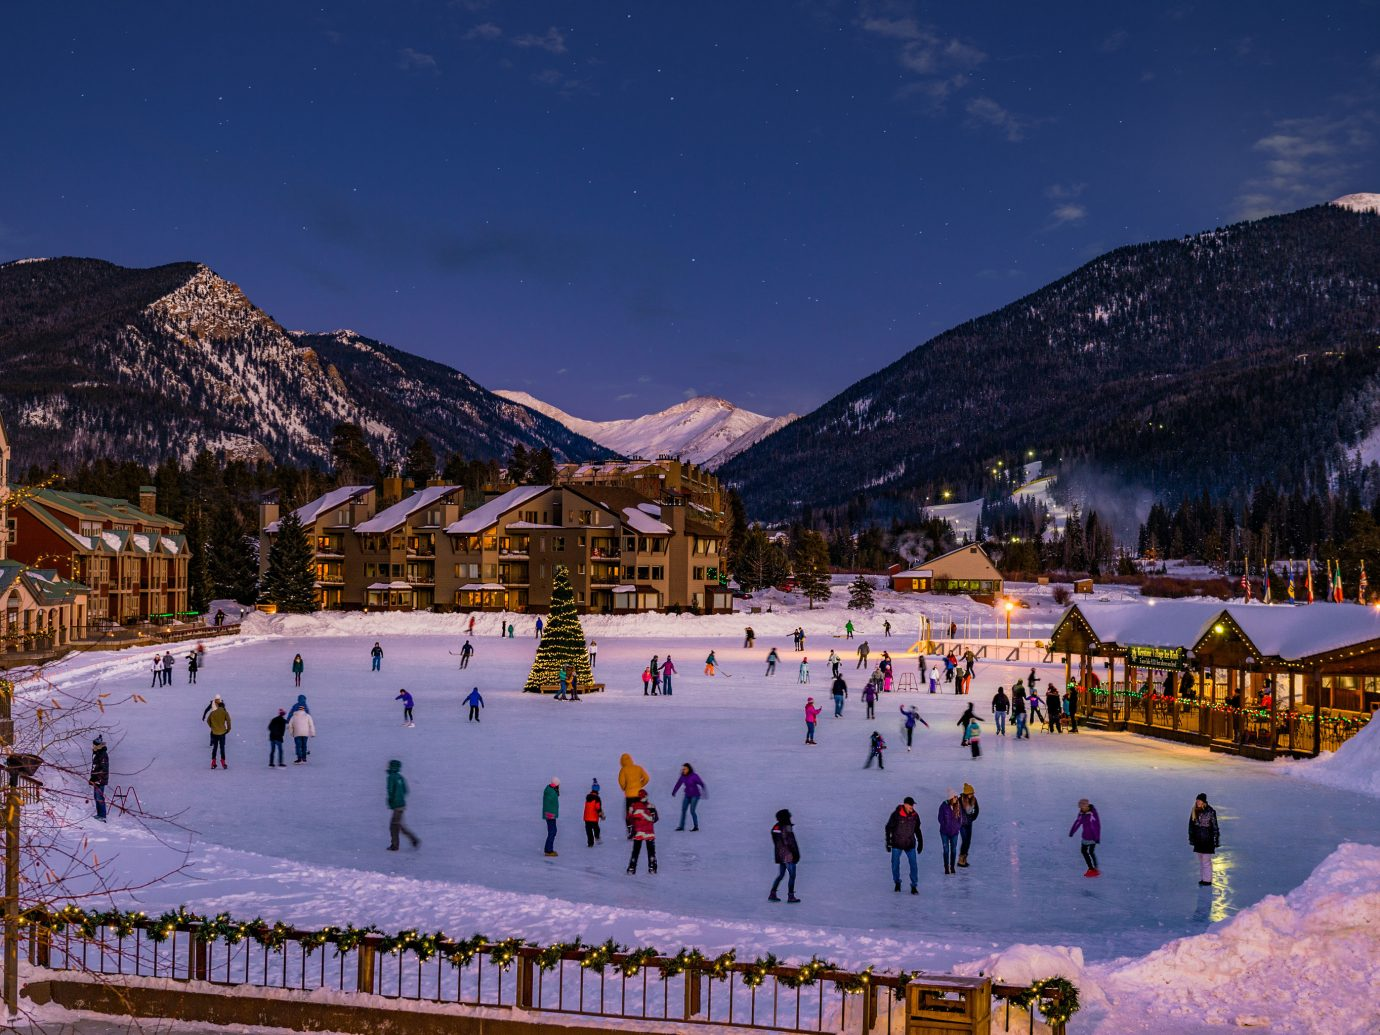 Mountains + Skiing Trip Ideas mountain sky snow outdoor skiing mountainous landforms Winter weather people mountain range Resort season group landscape evening alps piste ski slope slope